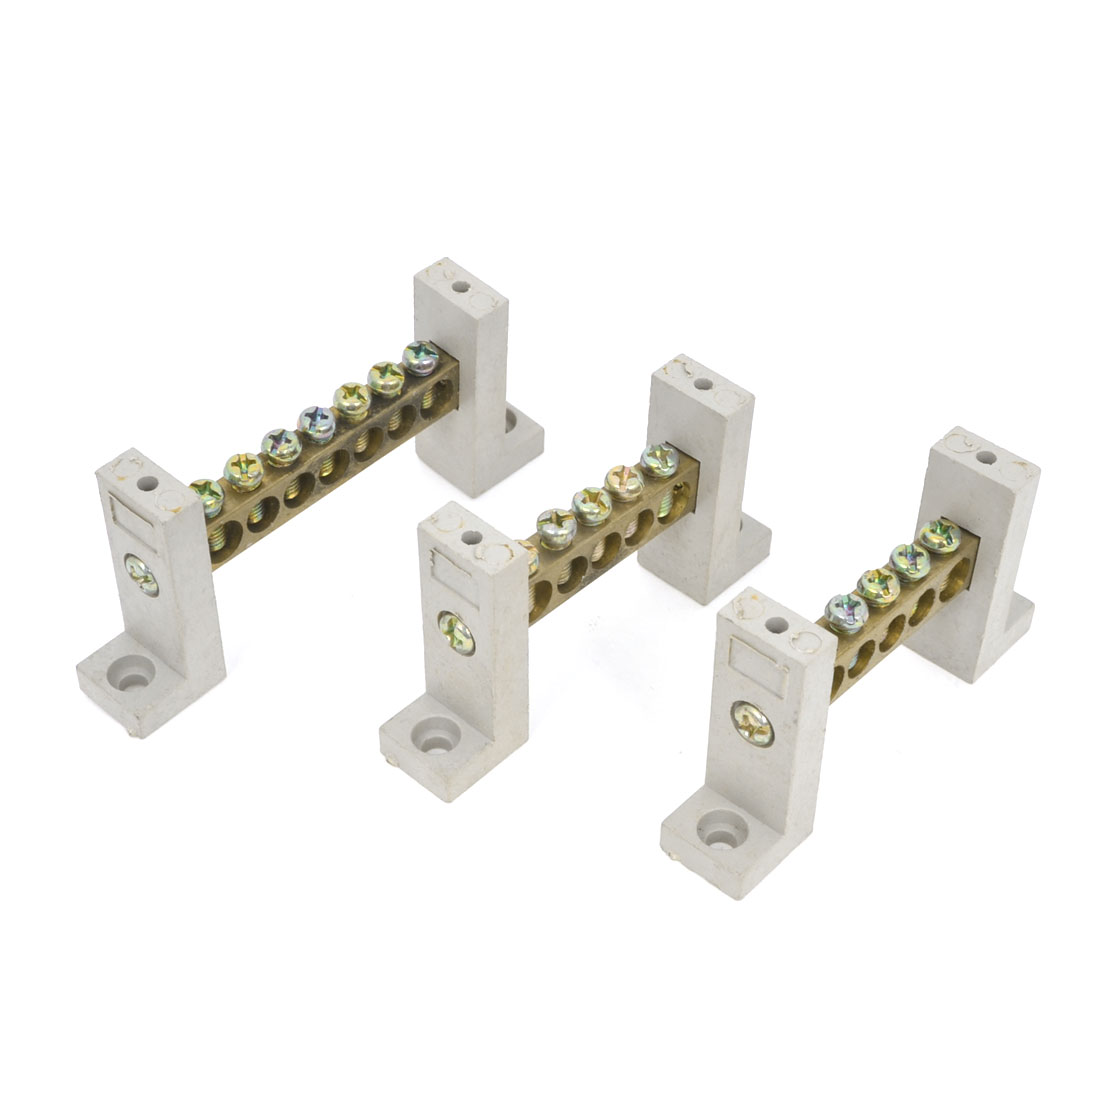 Screws Installation 5 Hole Copper Tone Terminals Connecting Block Gray 3 Pcs